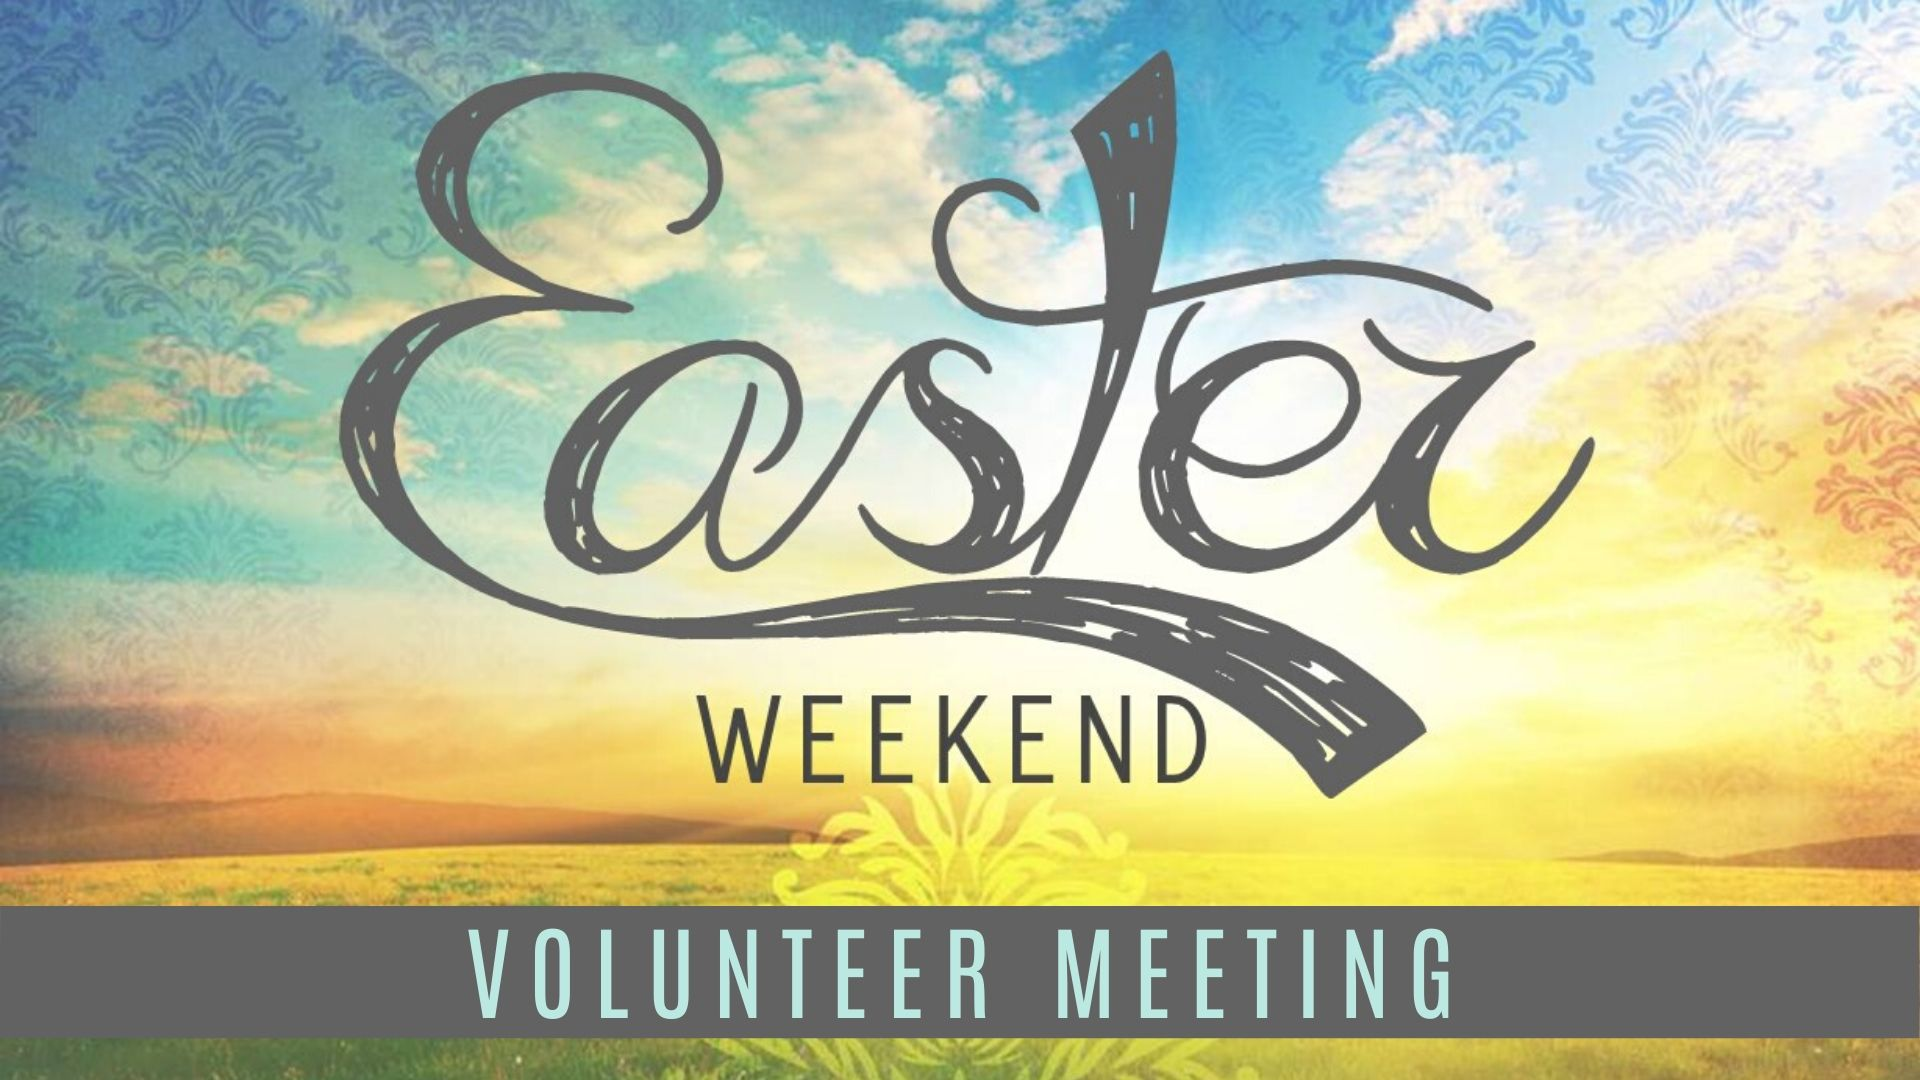 Easter Weekend - Volunteer Meeting image